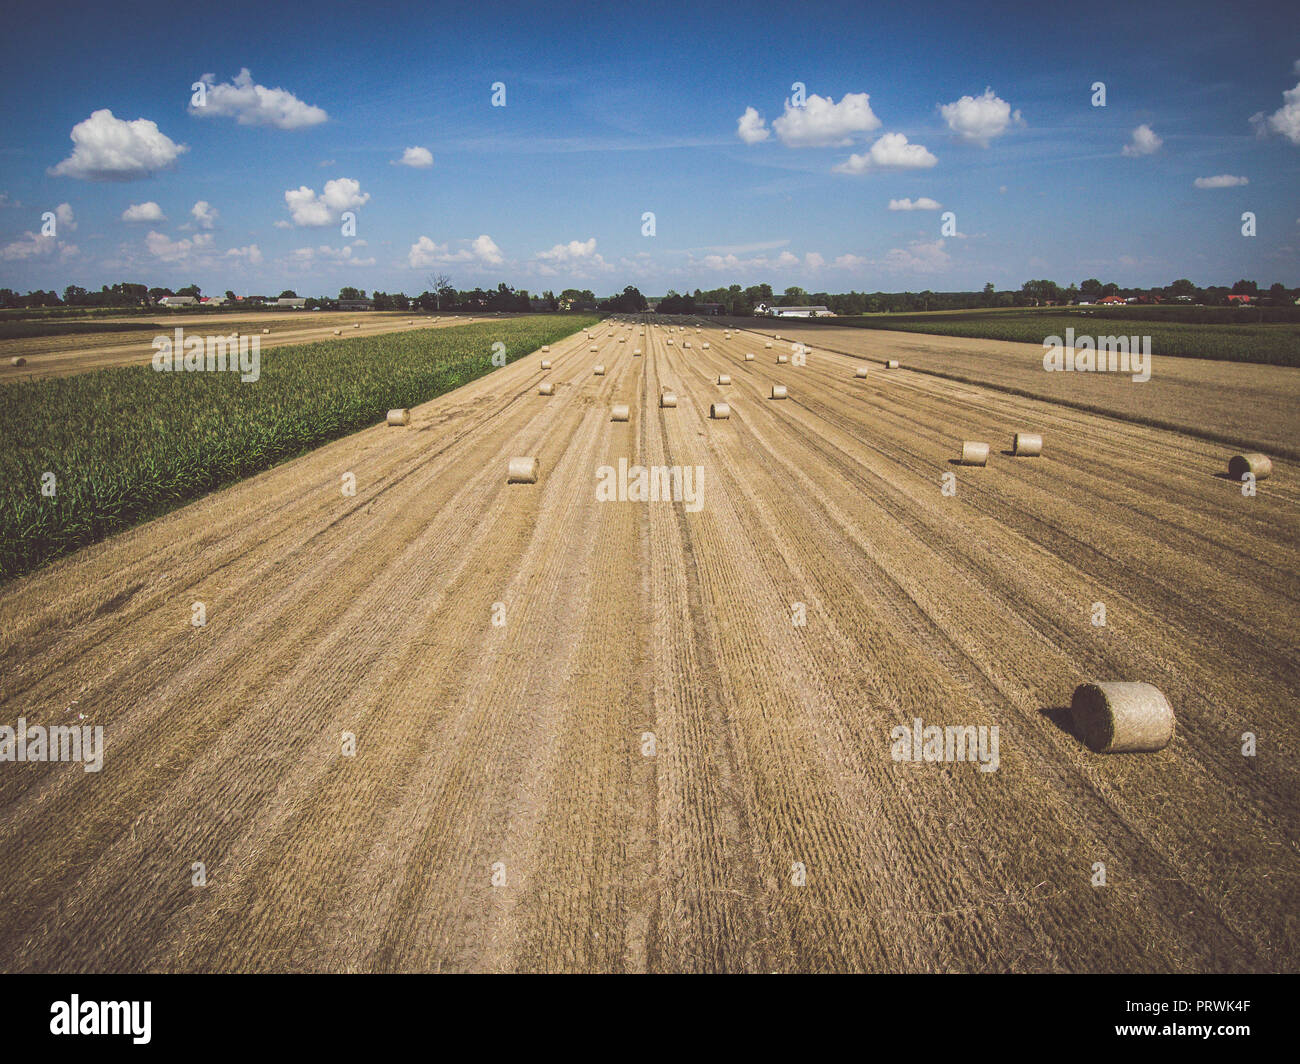 Aerial view of round hay bales on stubble under blue cloudy sky, with a distant village in the background - Stock Image